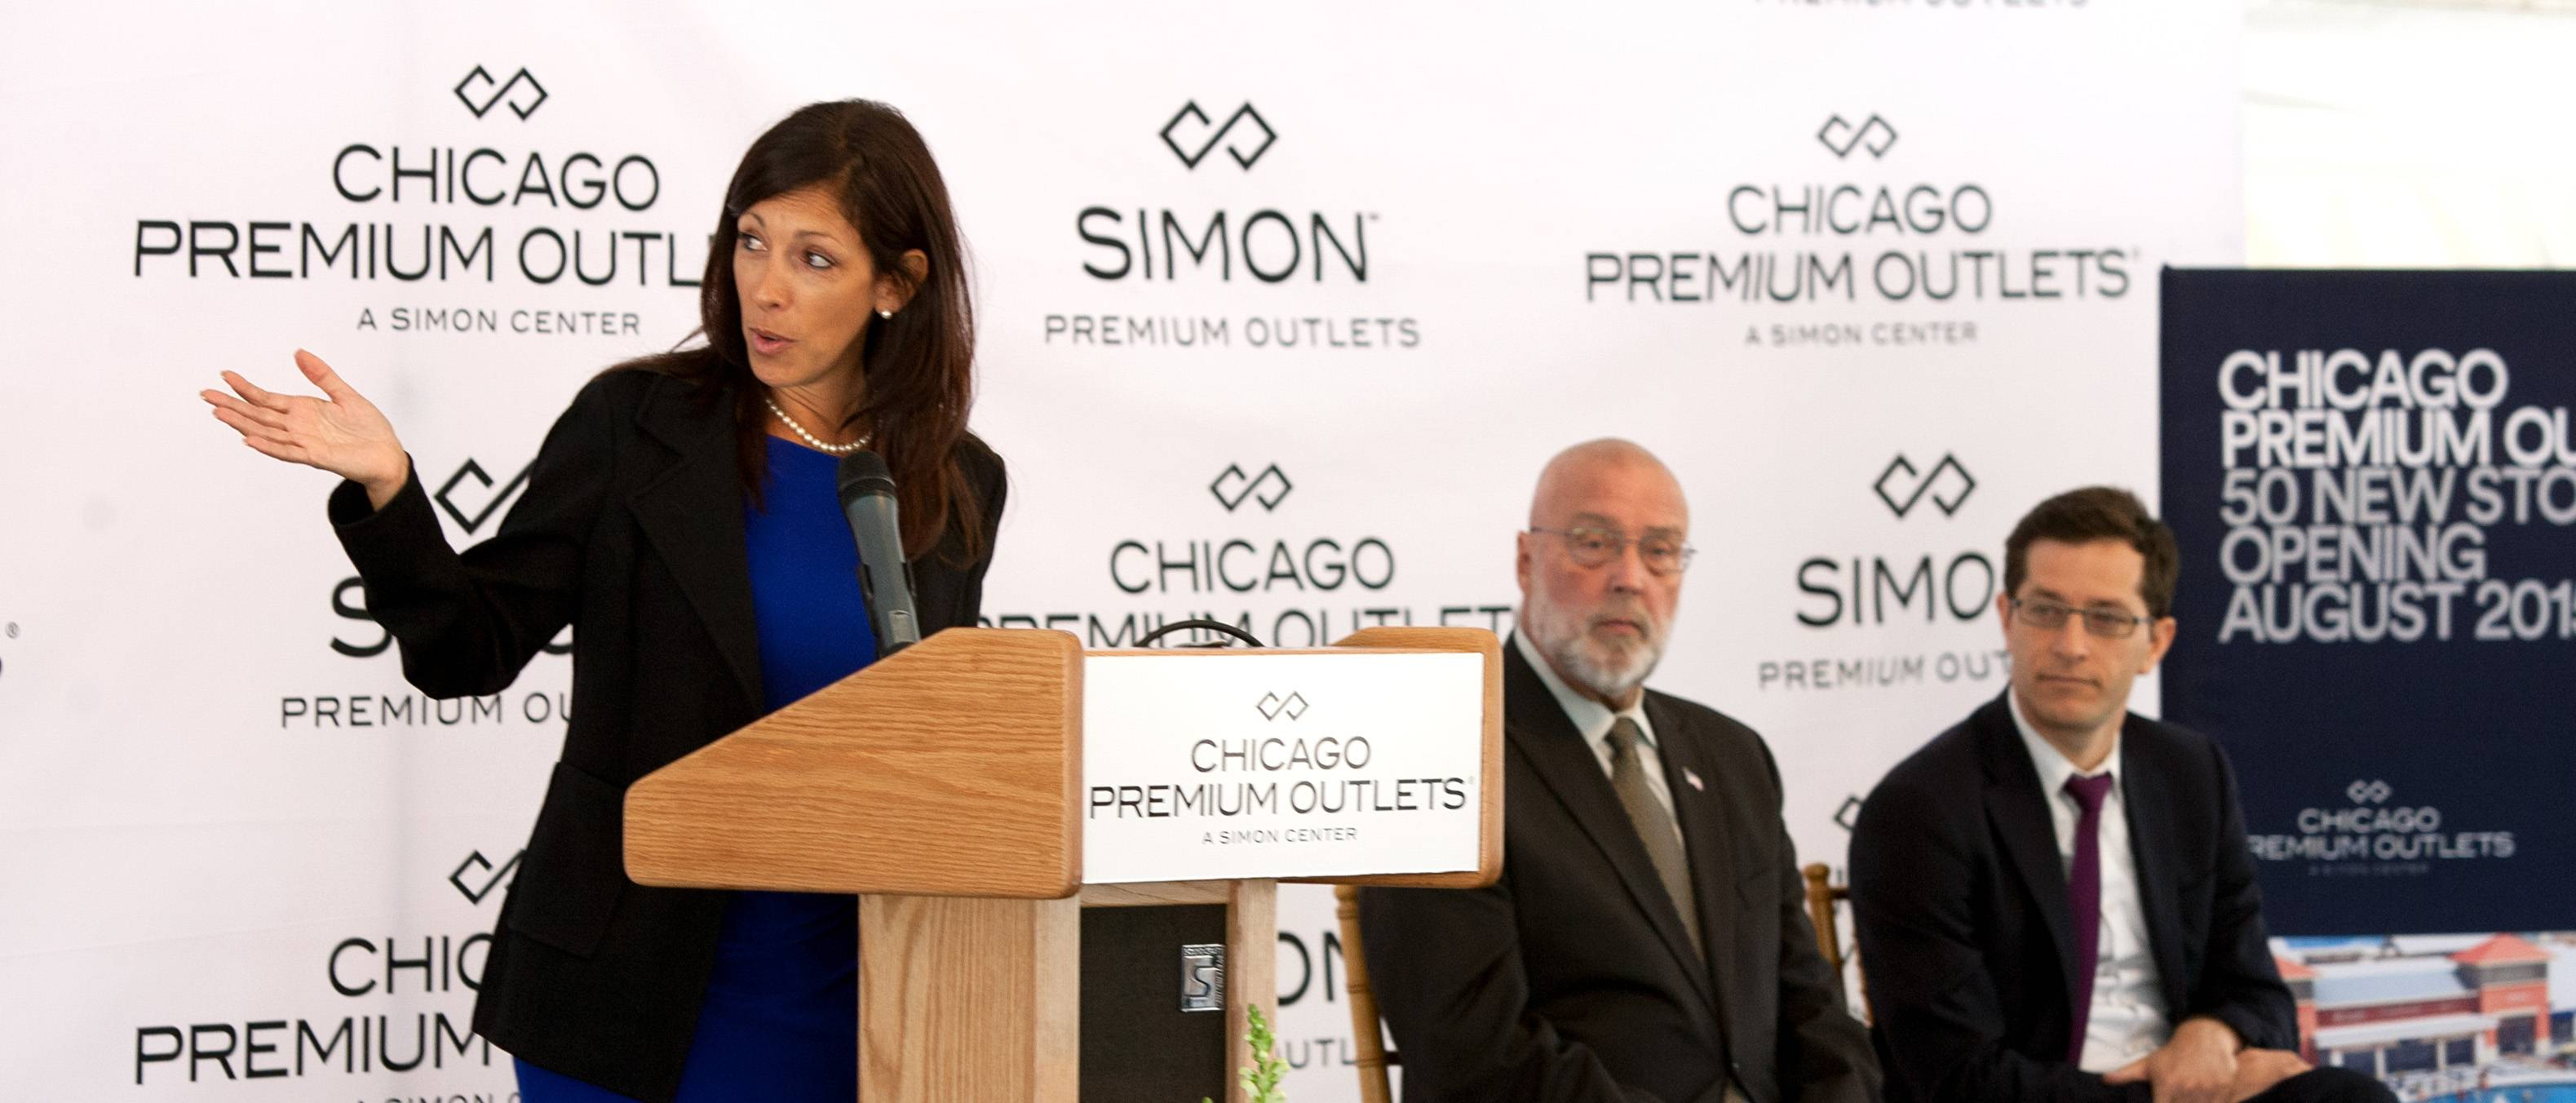 Danielle De Vita, senior vice president of development and acquisitions for Simon Premium Outlets, explains the company's plans to build 50 more stores in a 290,000-square-foot addition to Chicago Premium Outlets in Aurora.